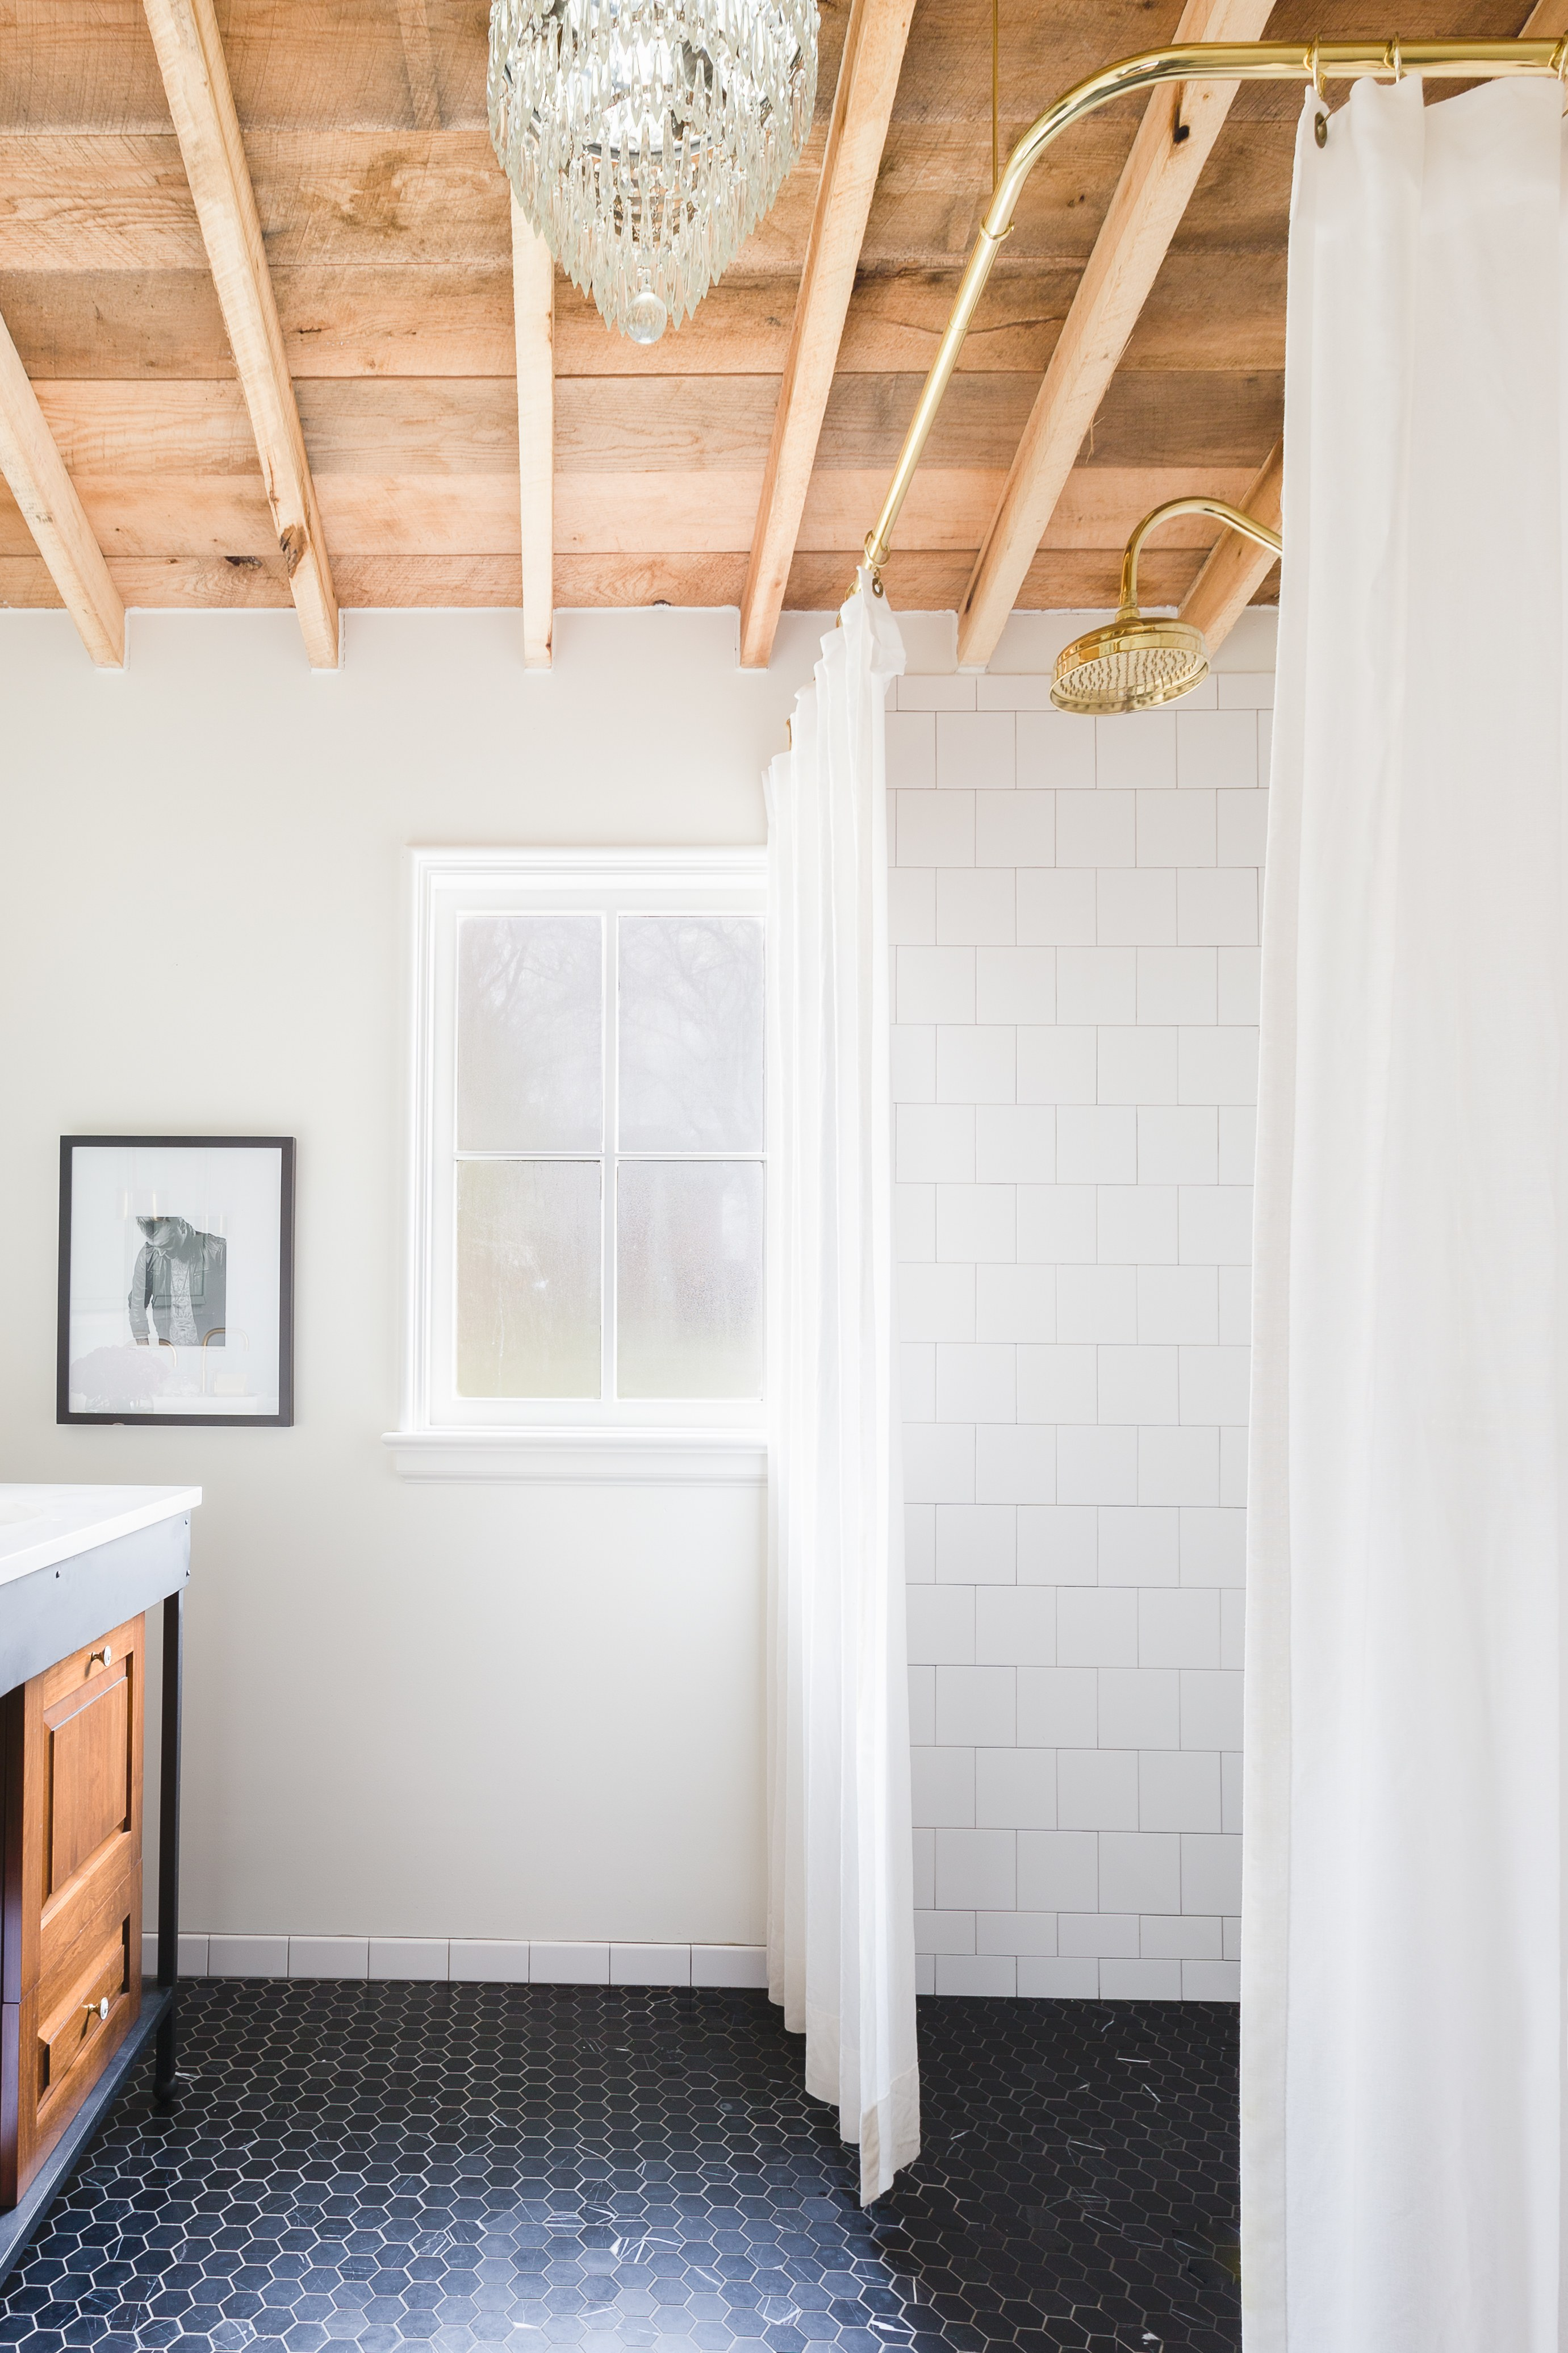 How to turn an old fashioned bathroom into modern